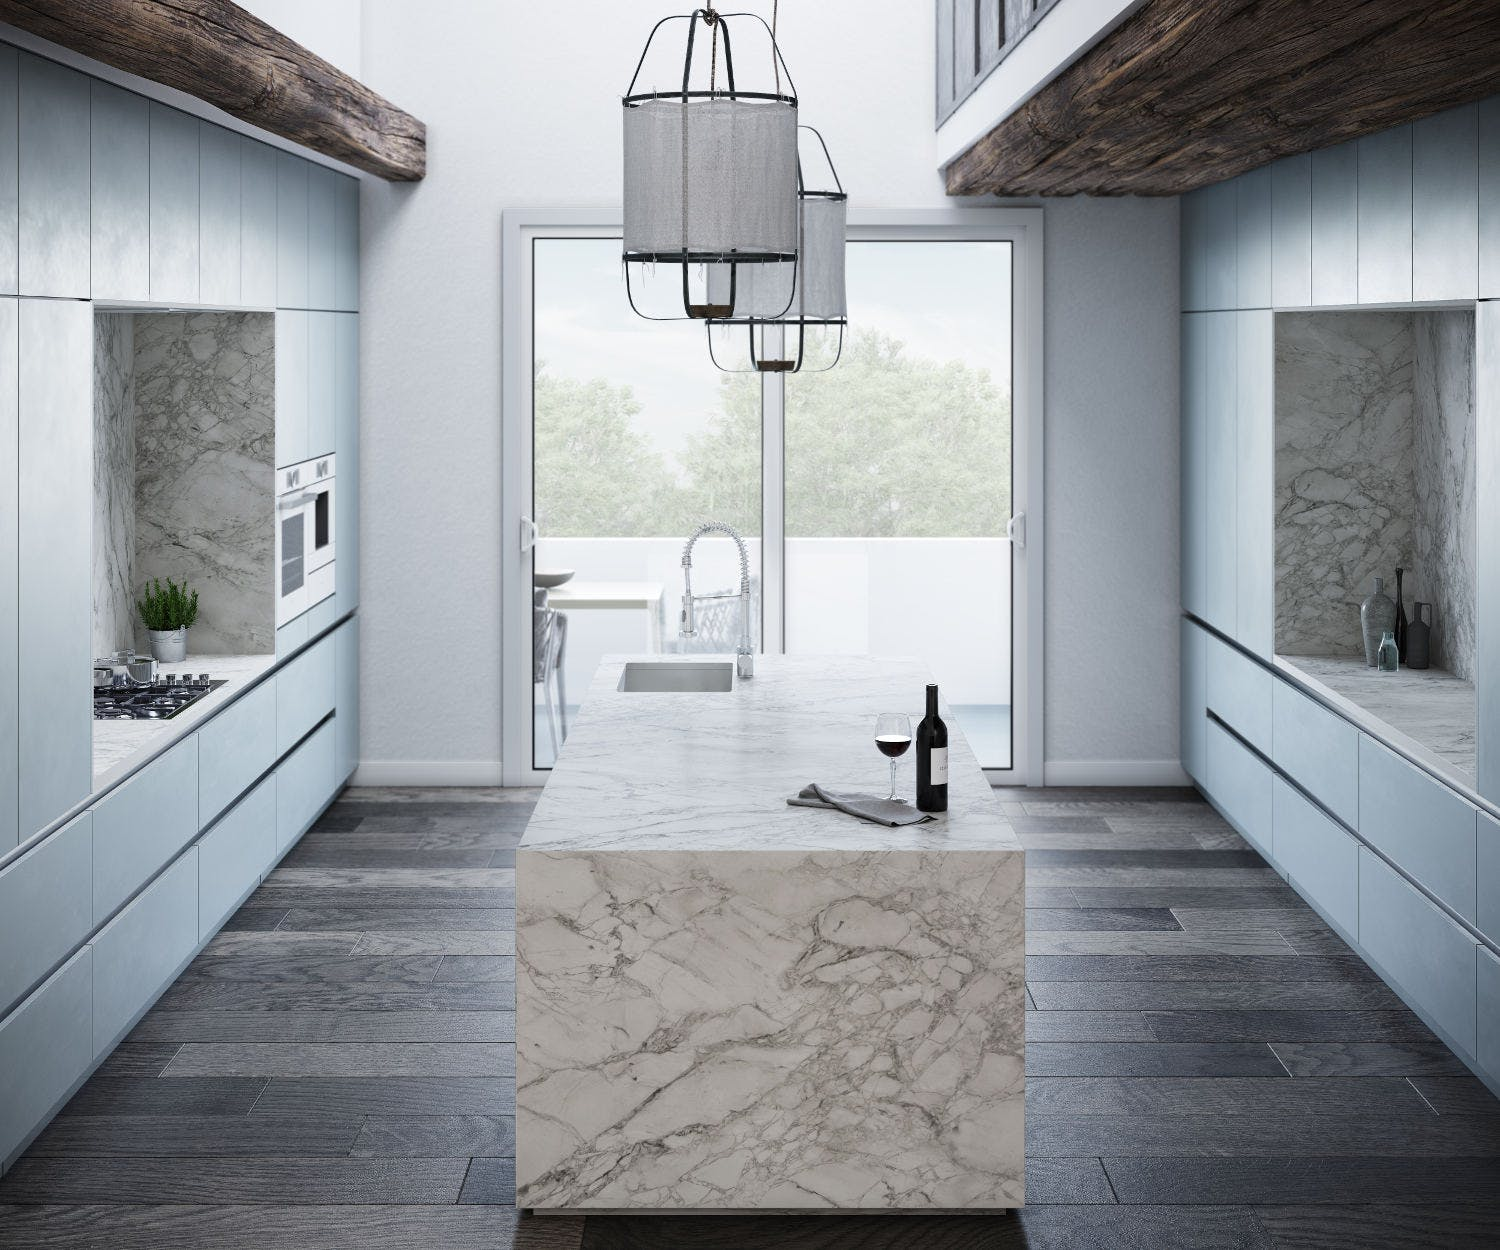 Image of Dekton Kitchen Portum Velvet 1 in Compact kitchens: Who says they're a disadvantage? - Cosentino